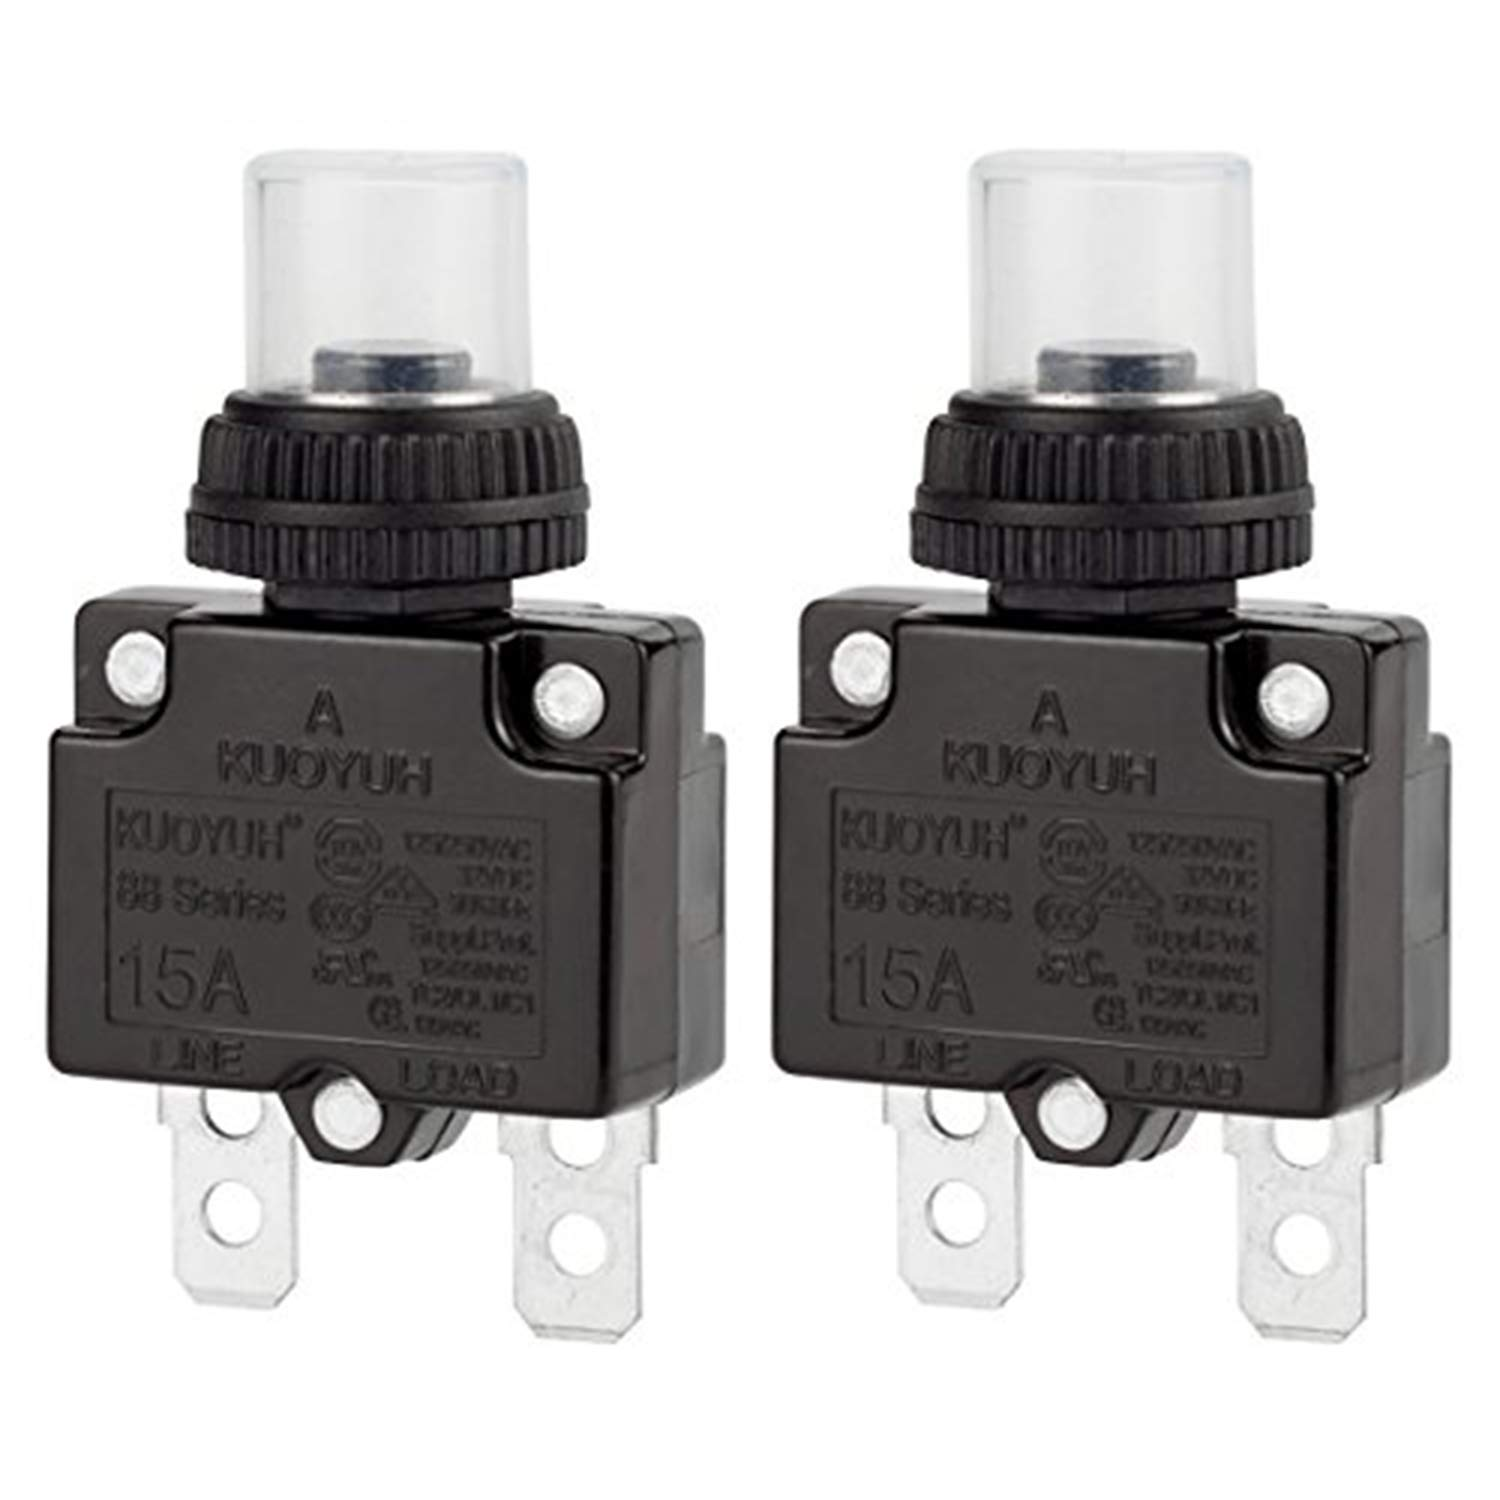 Circuit Breaker, DIYhz Thermal Overload Circuit Breaker 88 Series 15A 32V DC 125/250VAC 50/60Hz Push Button Circuit Breaker Reset Boot Switch and Waterproof Button Transparent Cap 2 Pcs